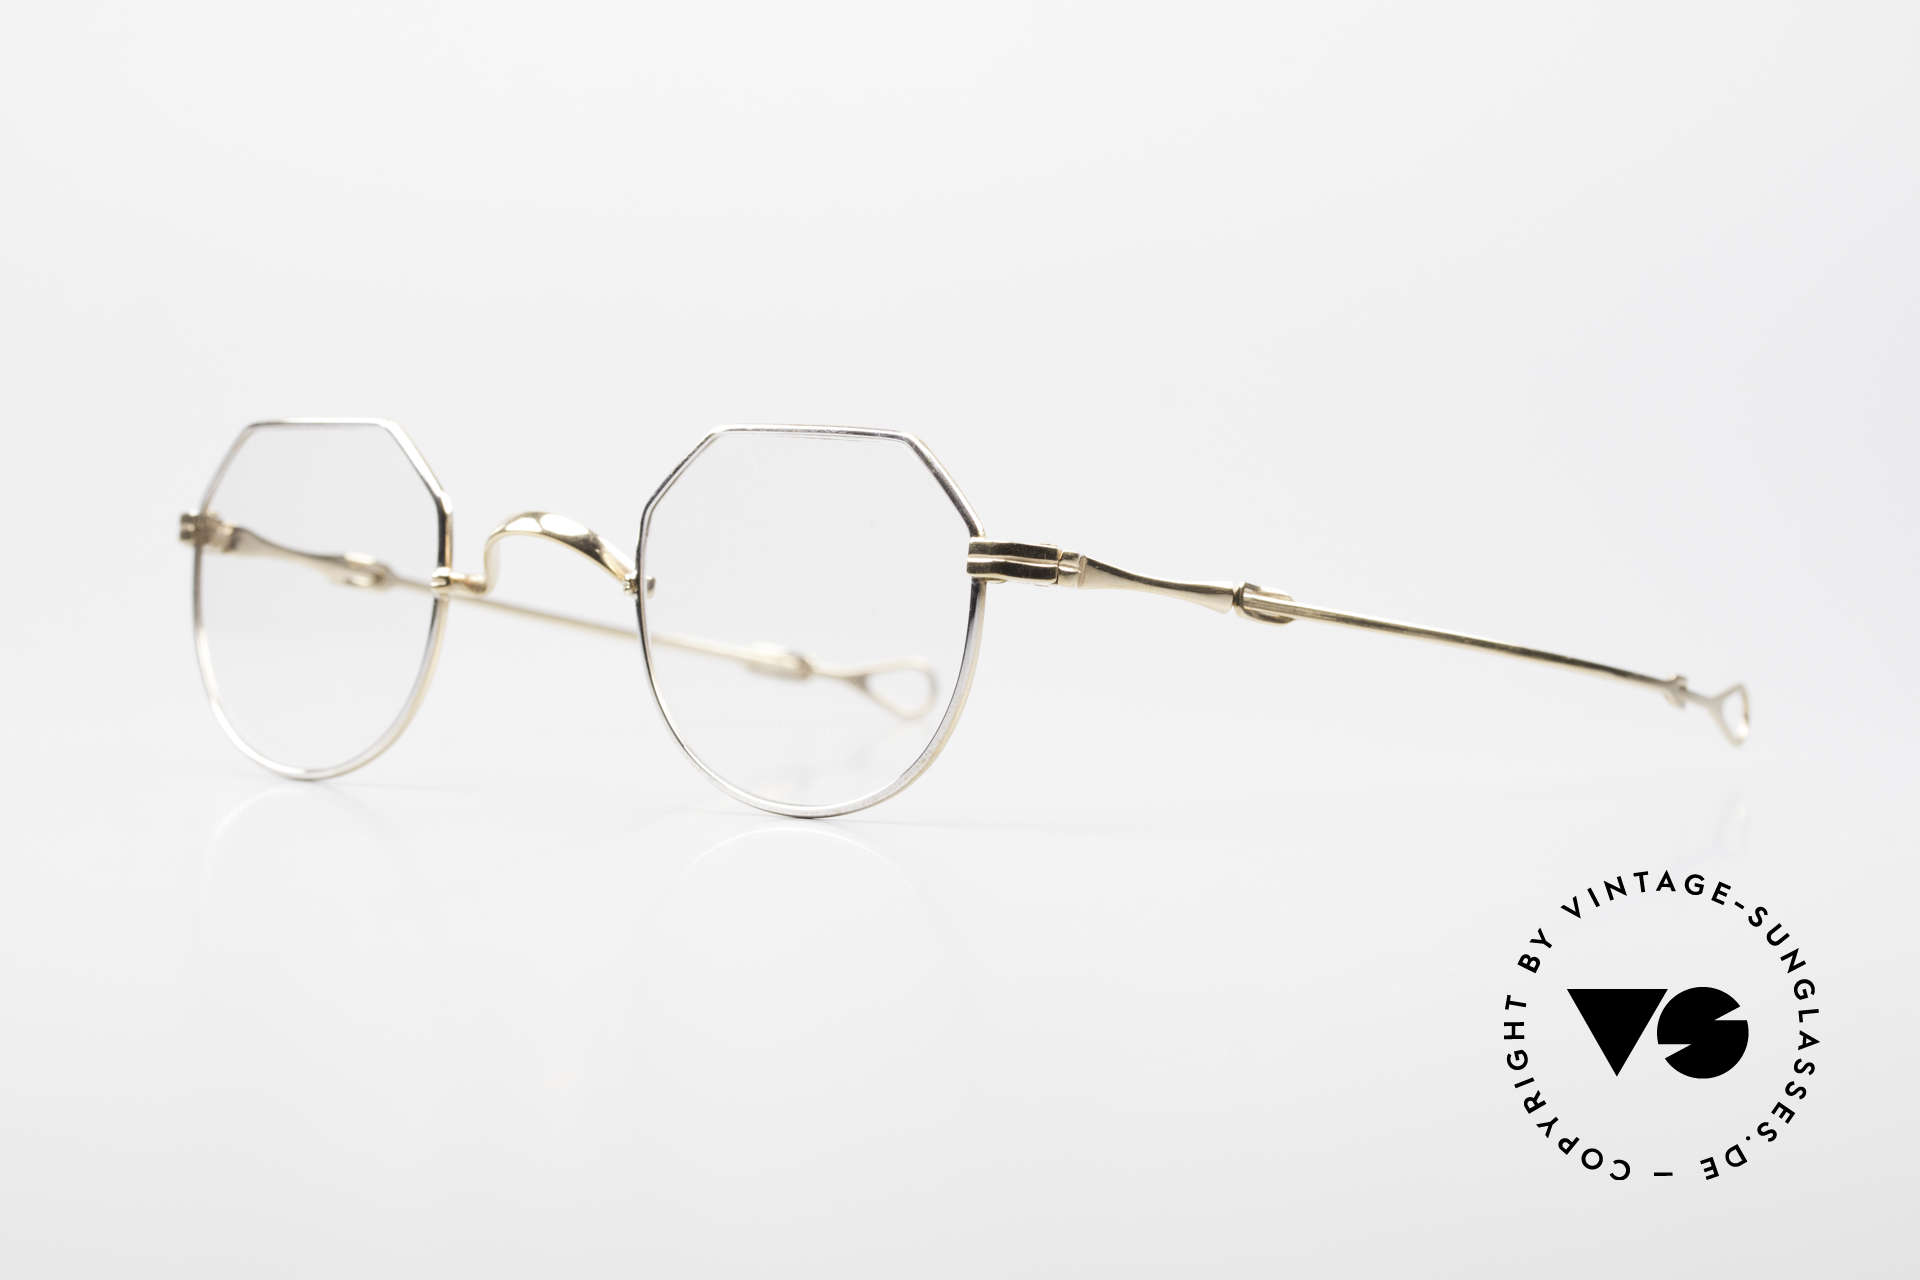 Lunor I 18 Telescopic Glasses With Telescopic Arms, this mechanism made the brand Lunor world-famous, Made for Men and Women